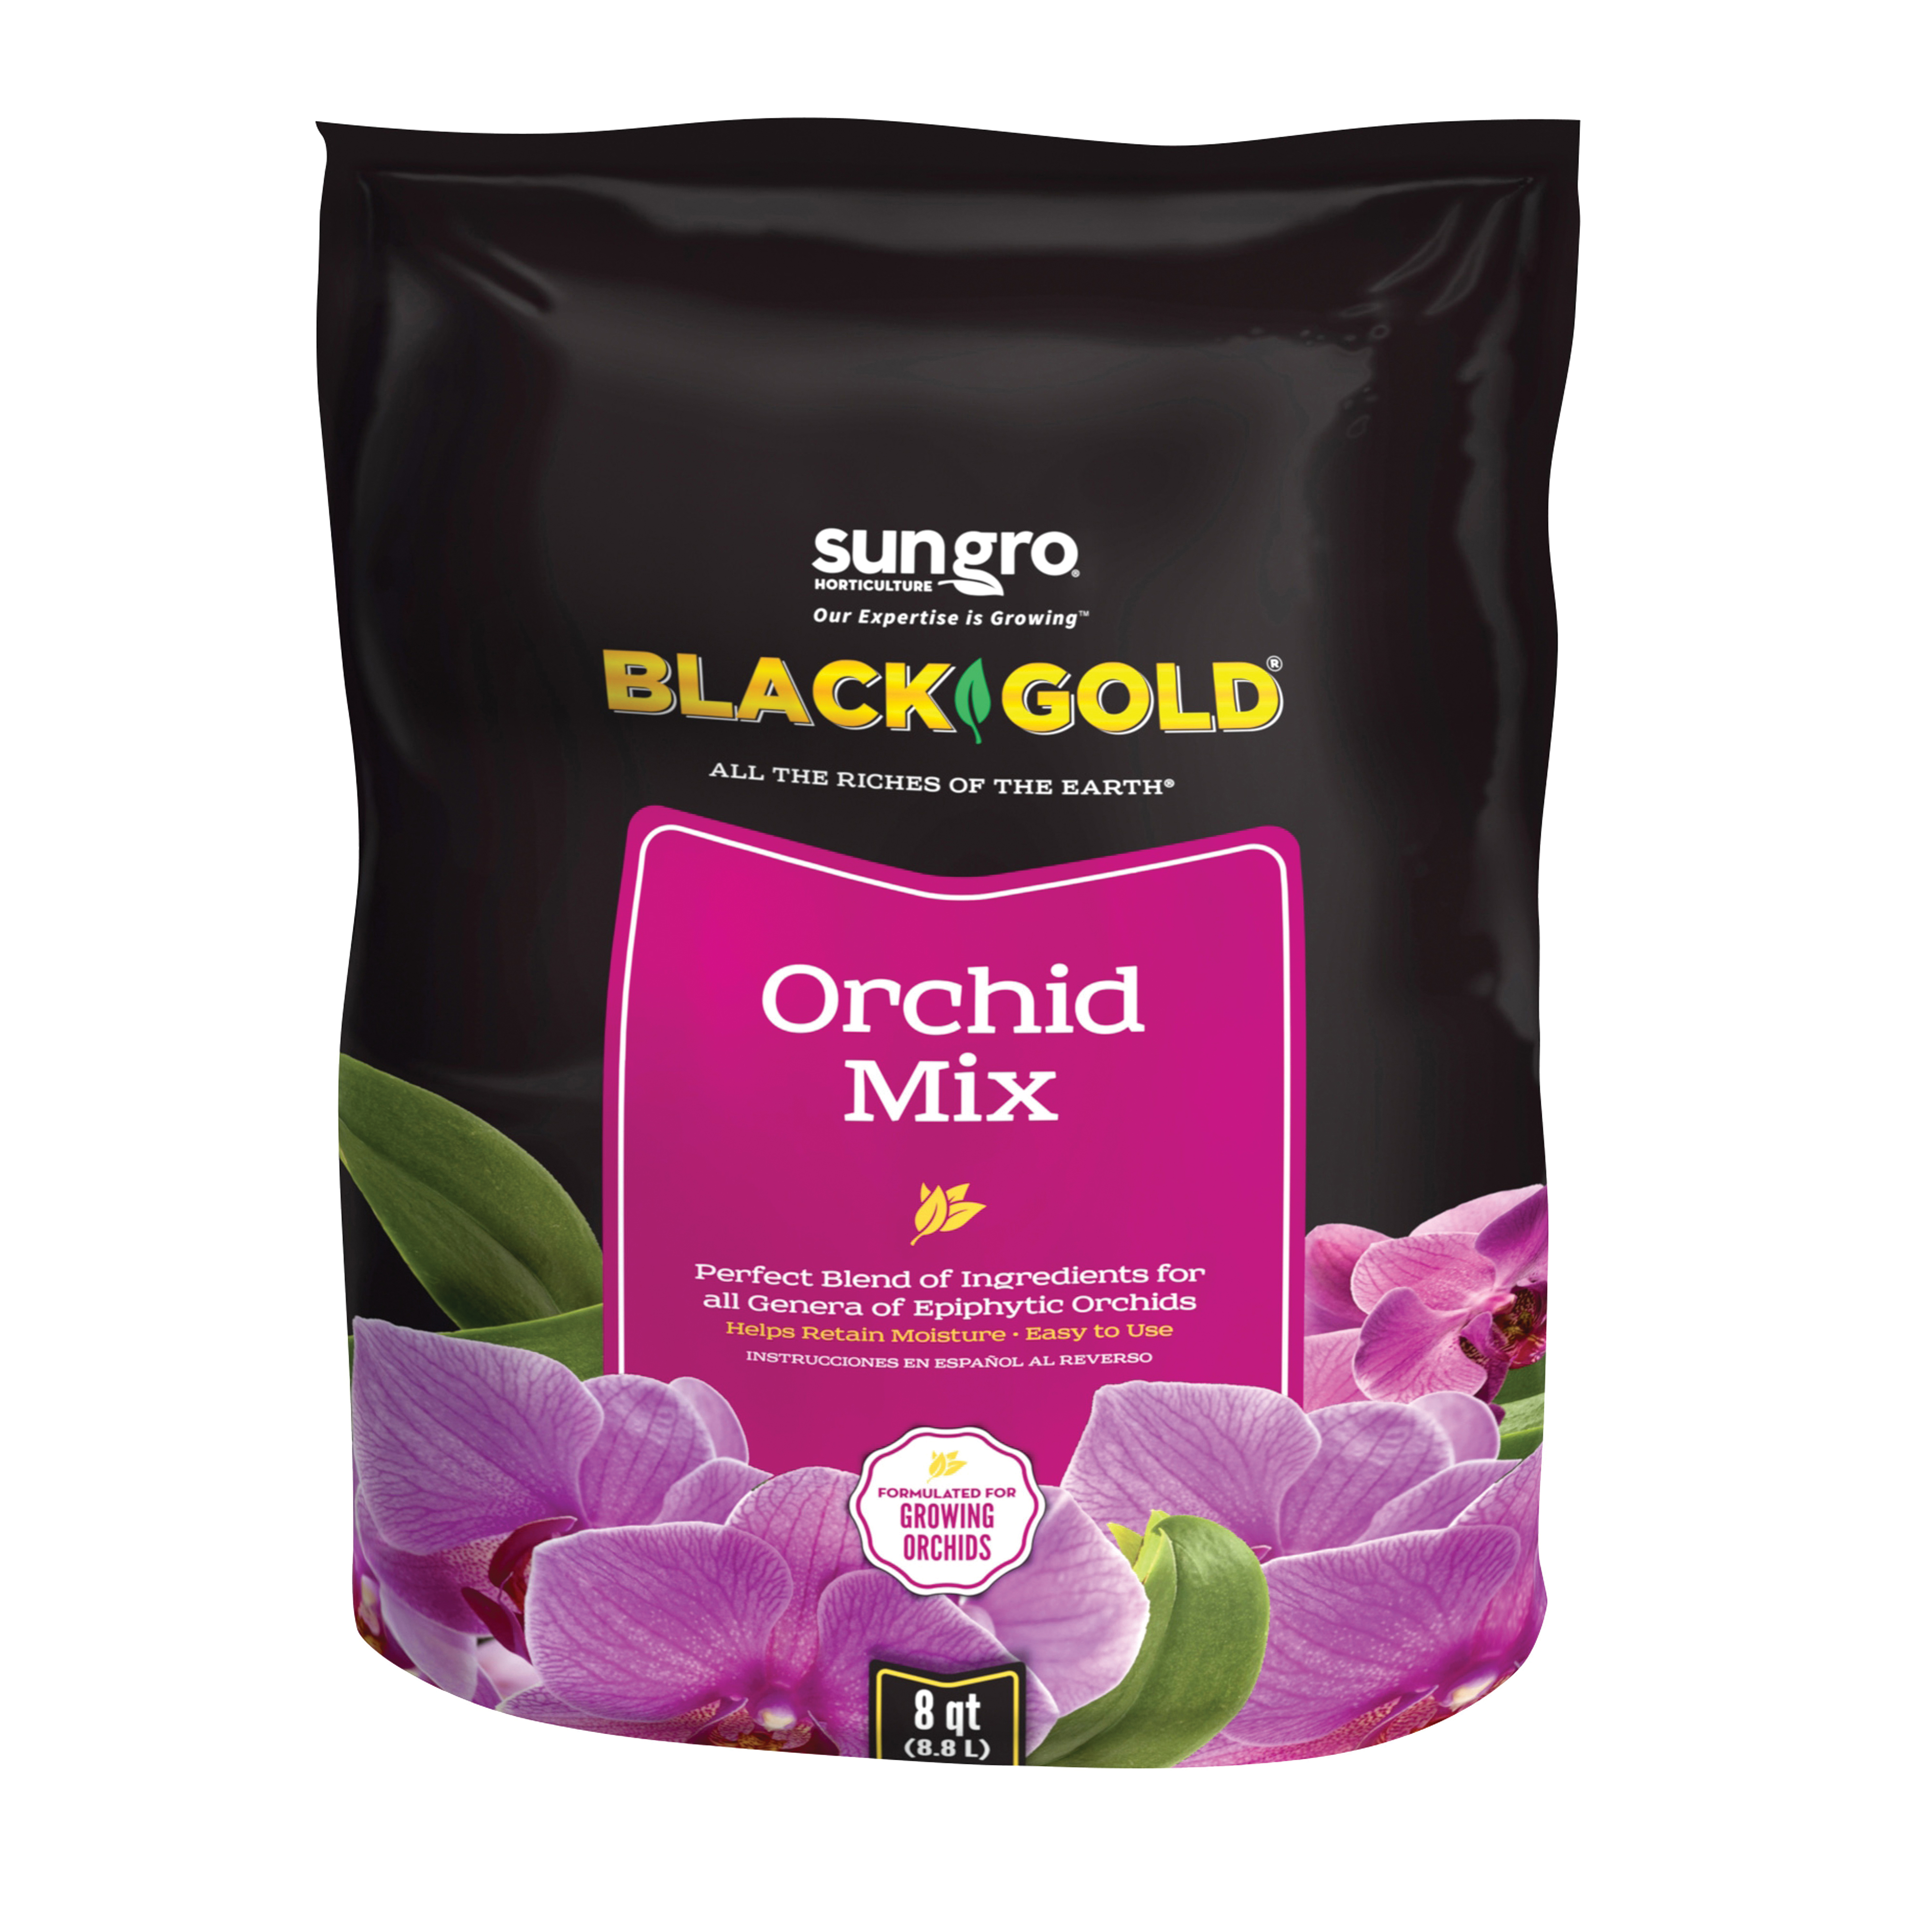 Picture of sun gro BLACK GOLD 1411402 8 QT P Orchid Mix, Granular, Brown/Earthy, 240 Package, Bag